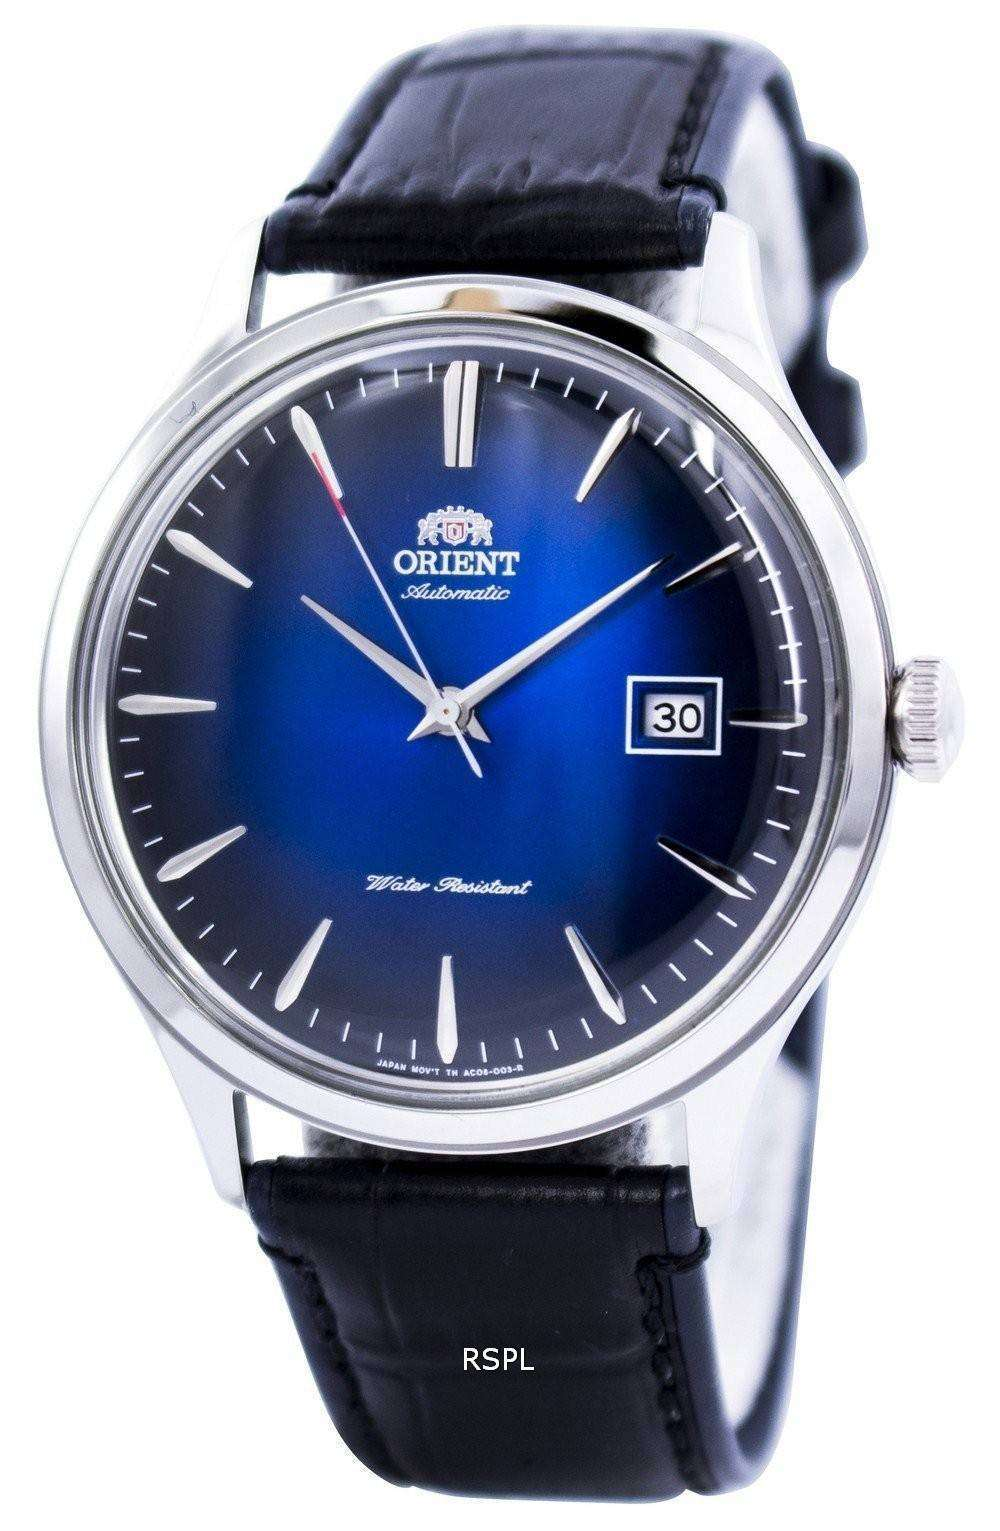 Tag Watches For Sale >> Orient Bambino Version 4 Classic Automatic FAC08004D0 AC08004D Men's Watch - CityWatches.co.uk